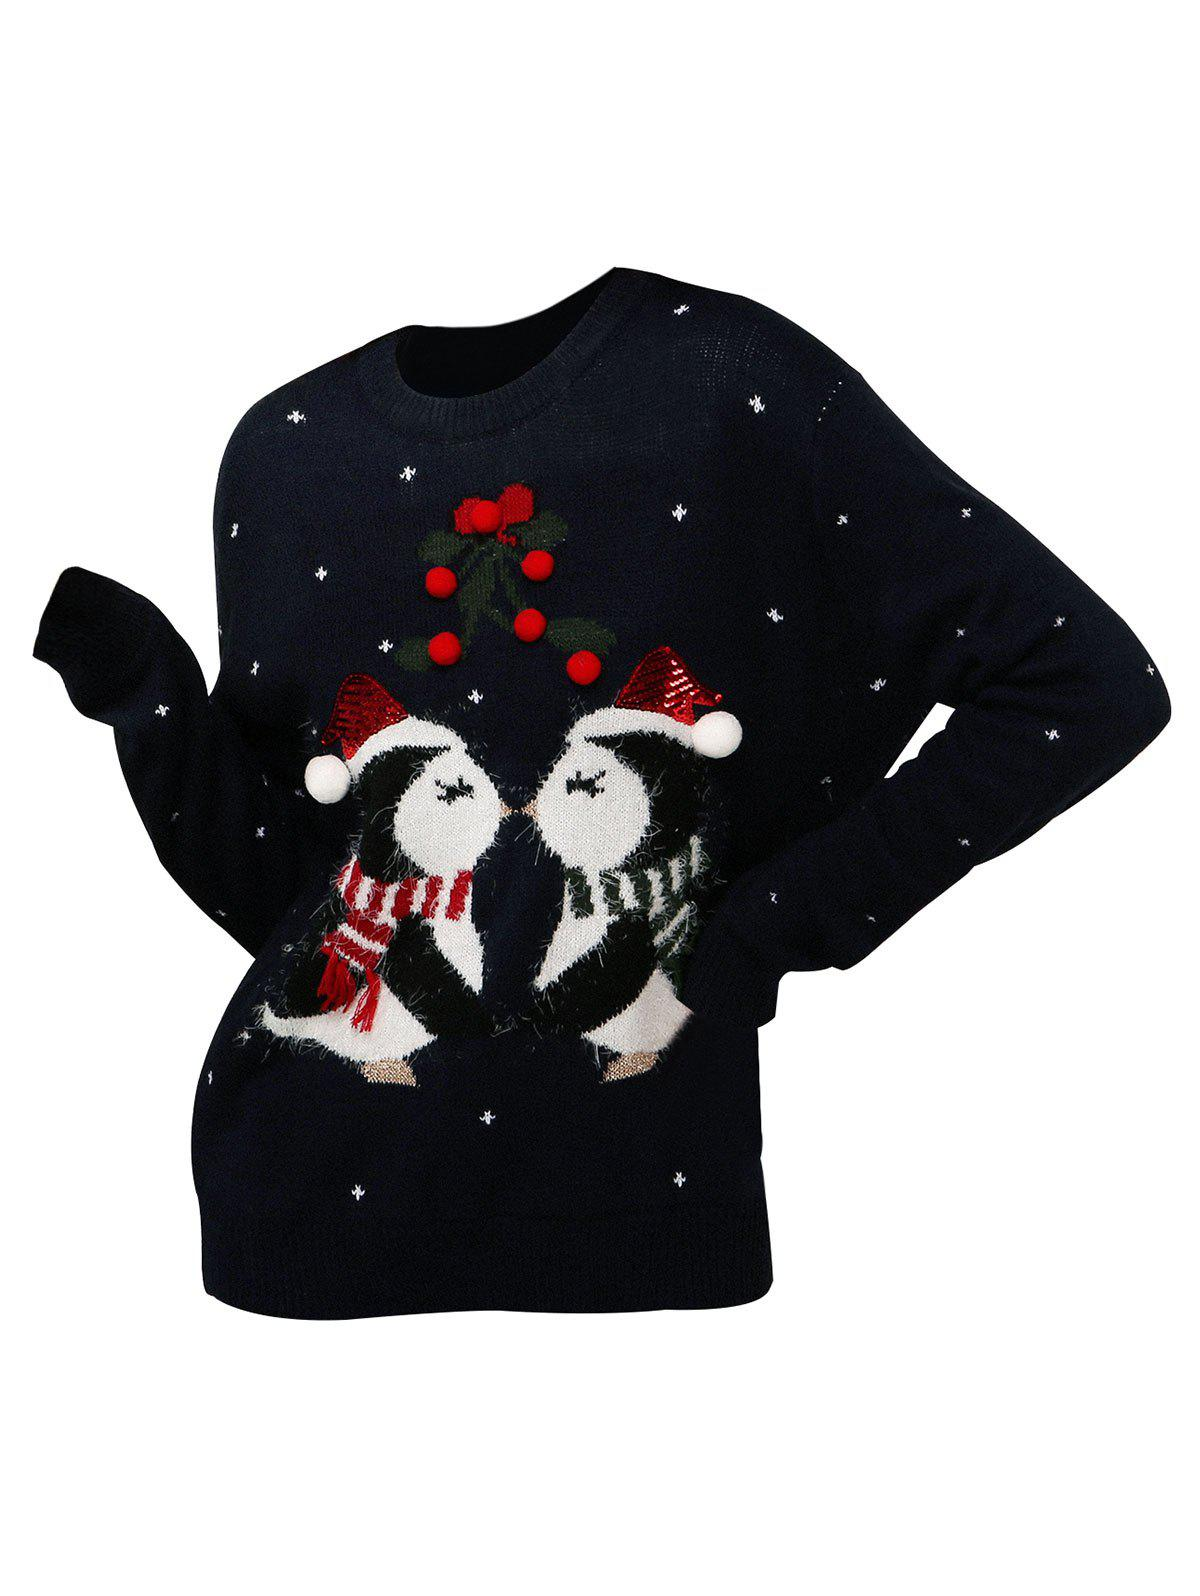 Shop Christmas Berry Funny Graphic Sequined Sweater